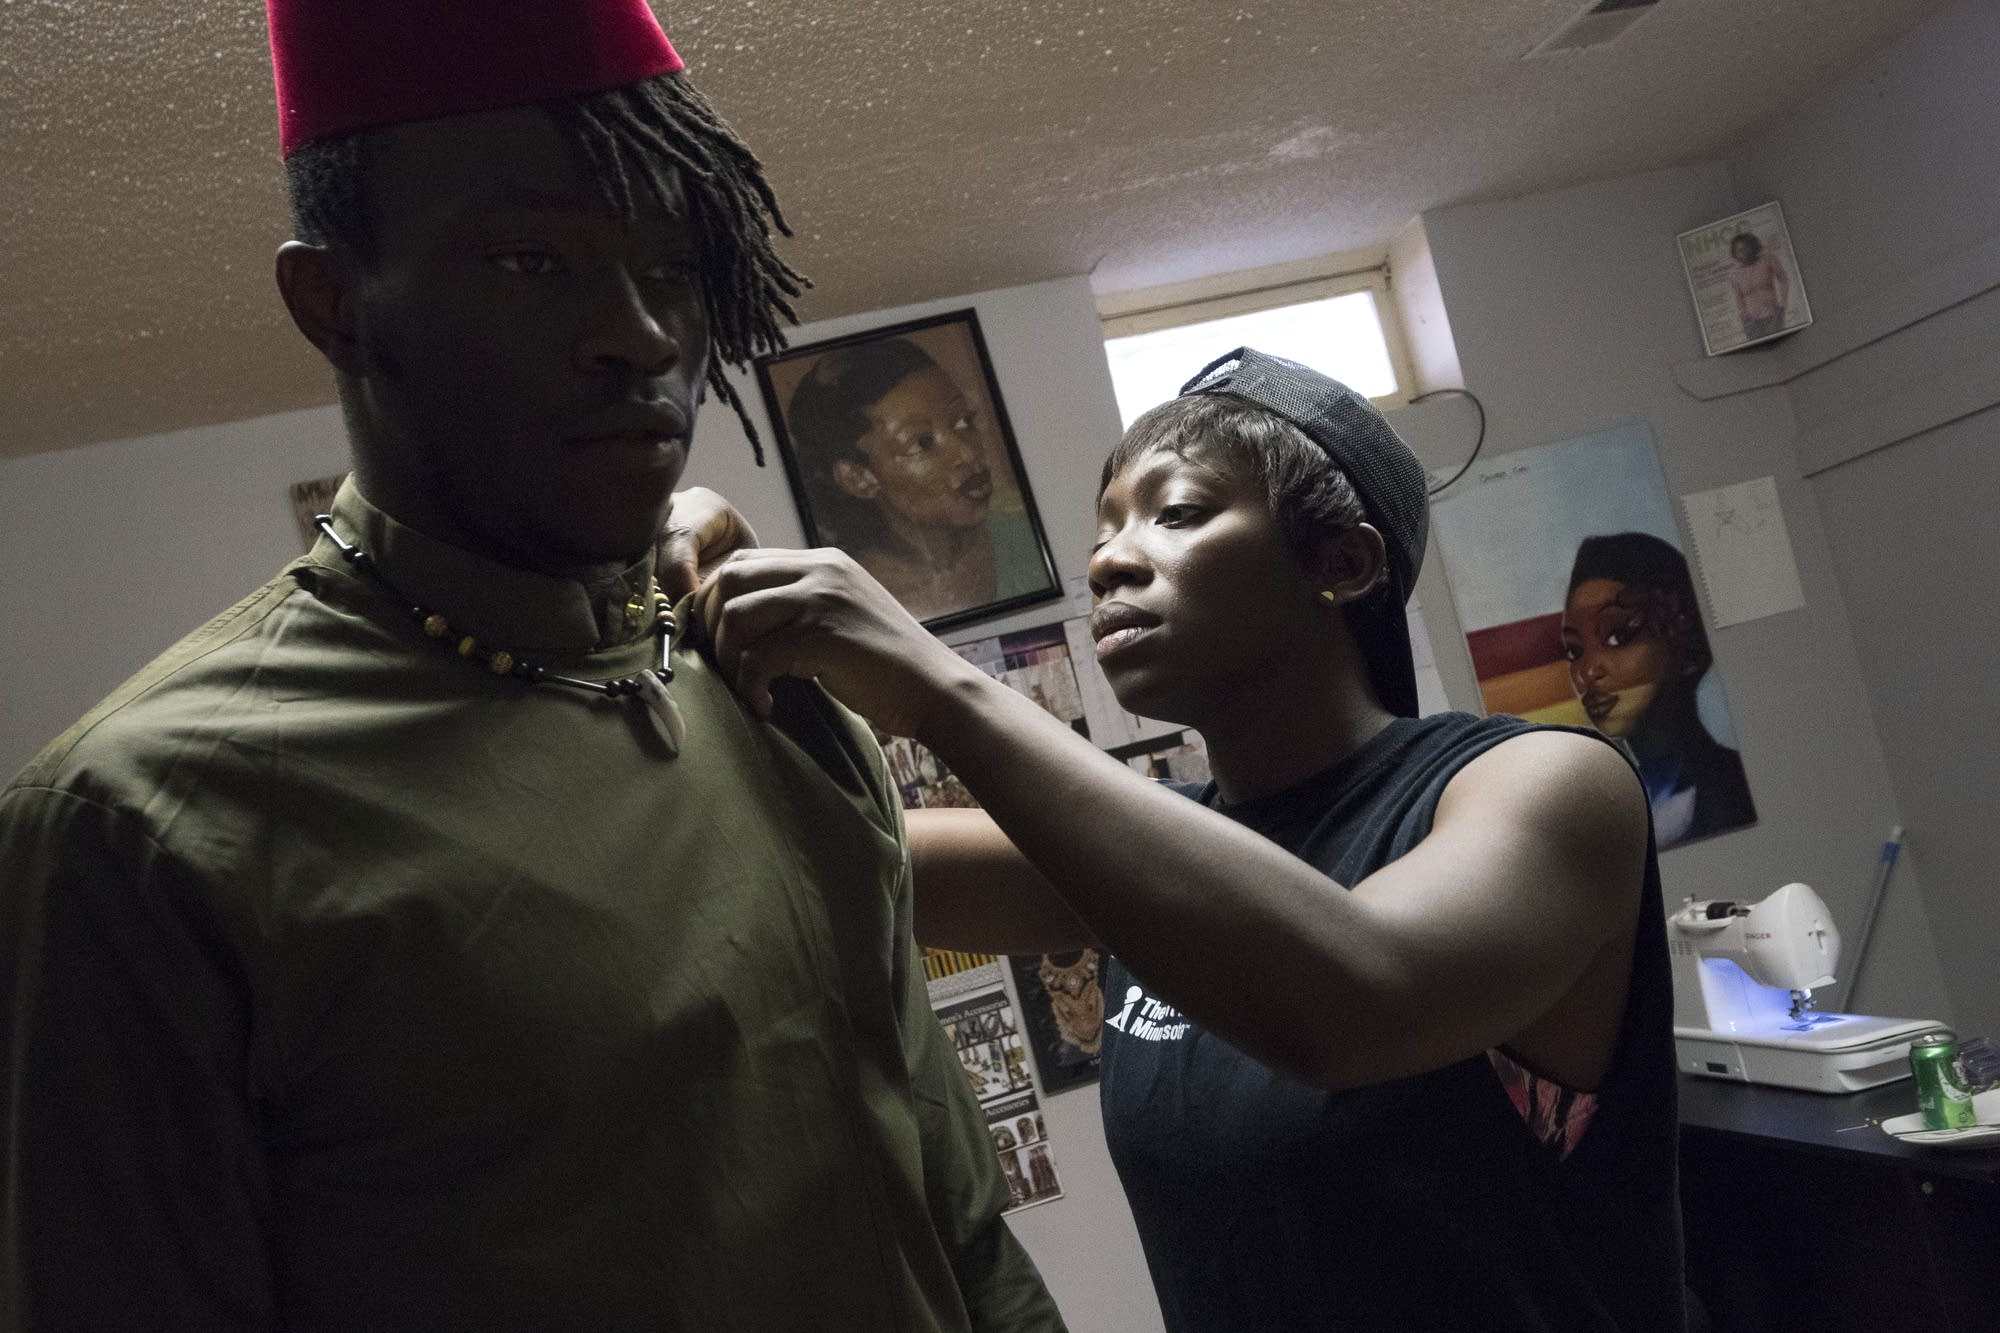 Designer Jacqueline Addison, right, secures a tunic on model Moise Damey.